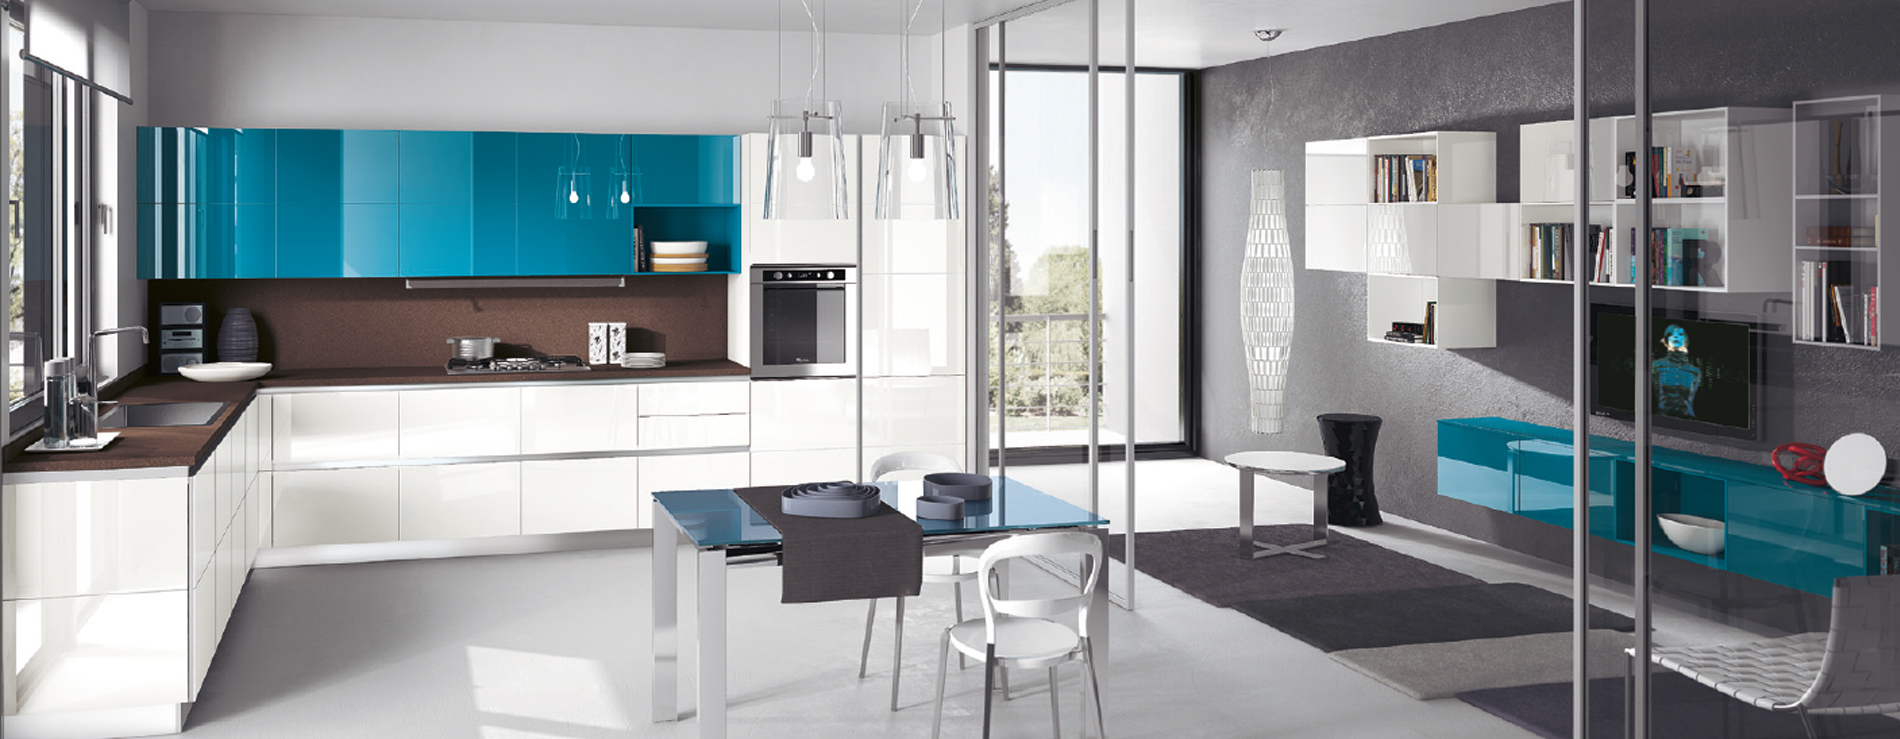 Stunning Cucina Tetrix Scavolini Contemporary - Home Ideas - tyger.us